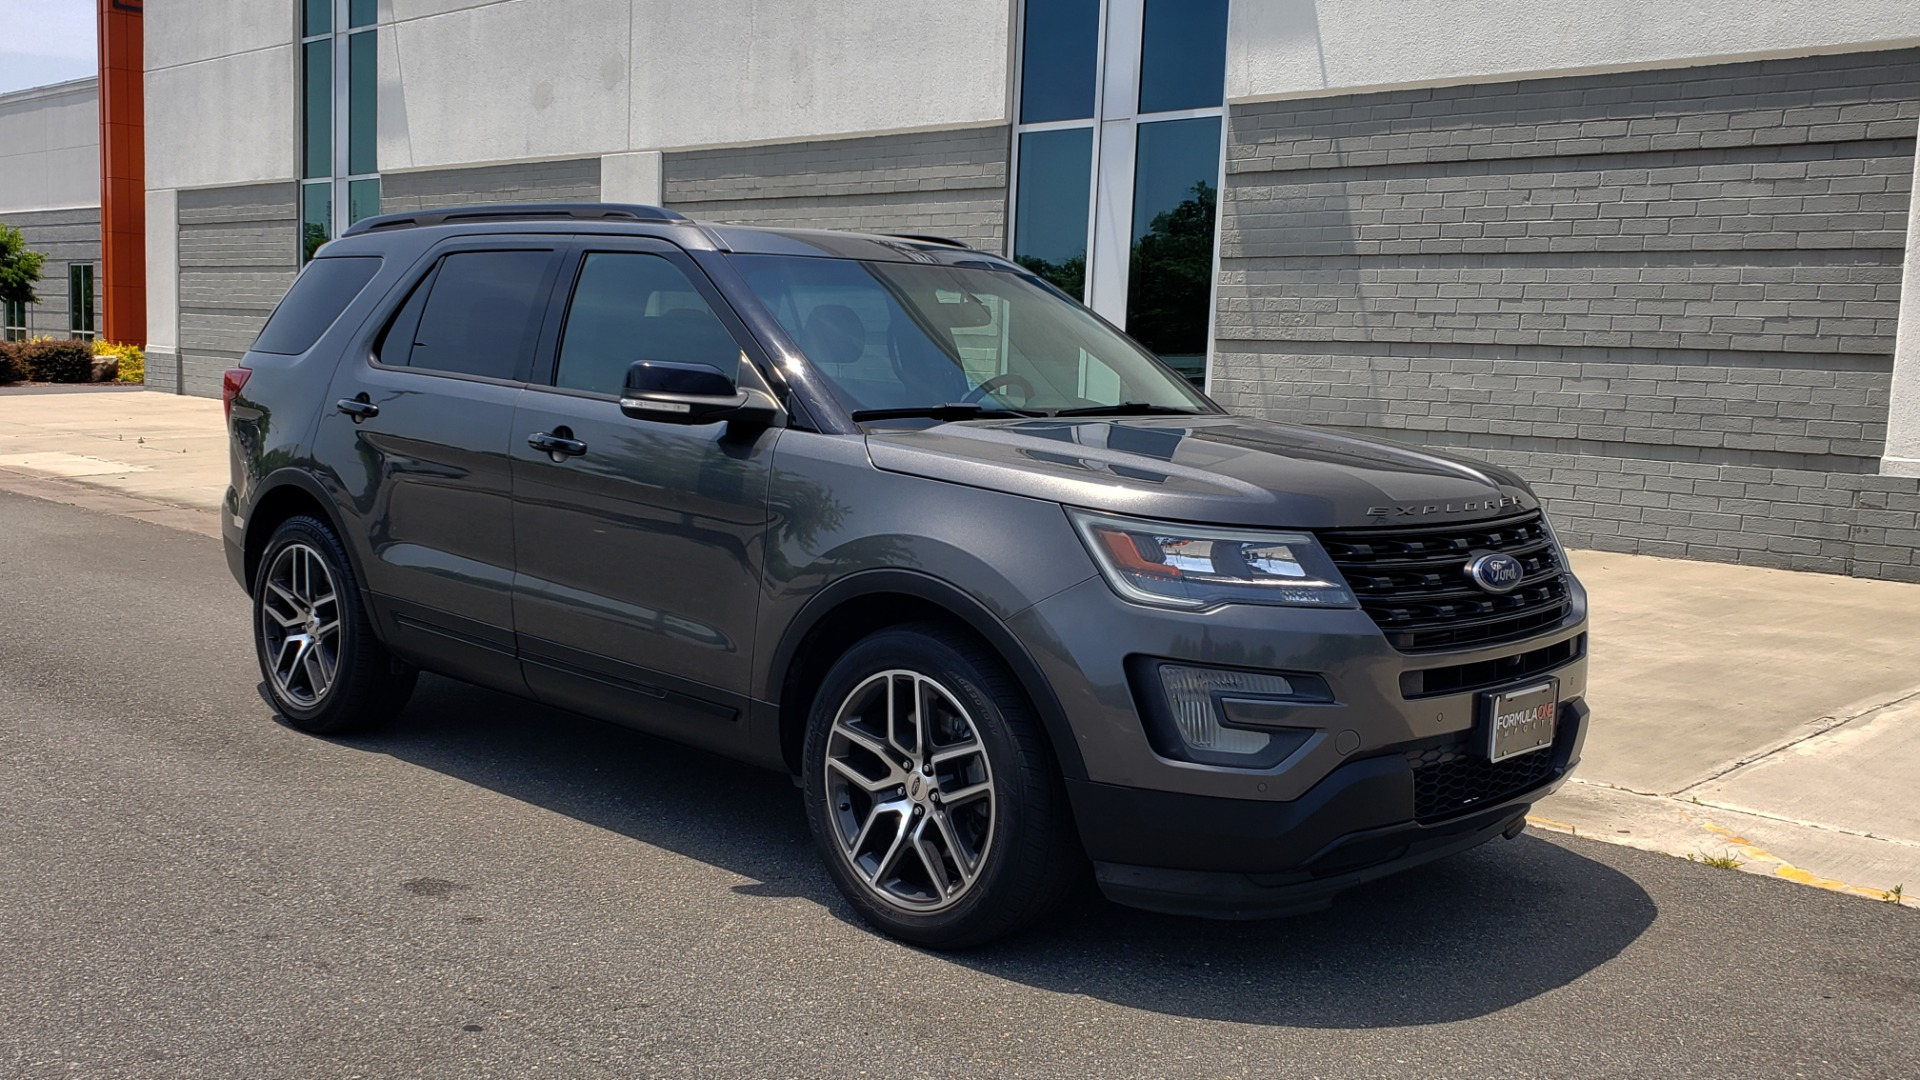 Used 2016 Ford EXPLORER SPORT 4WD / 3.5L ECOBOOST / 6-SPD AUTO / BSM / REARVIEW for sale Sold at Formula Imports in Charlotte NC 28227 9